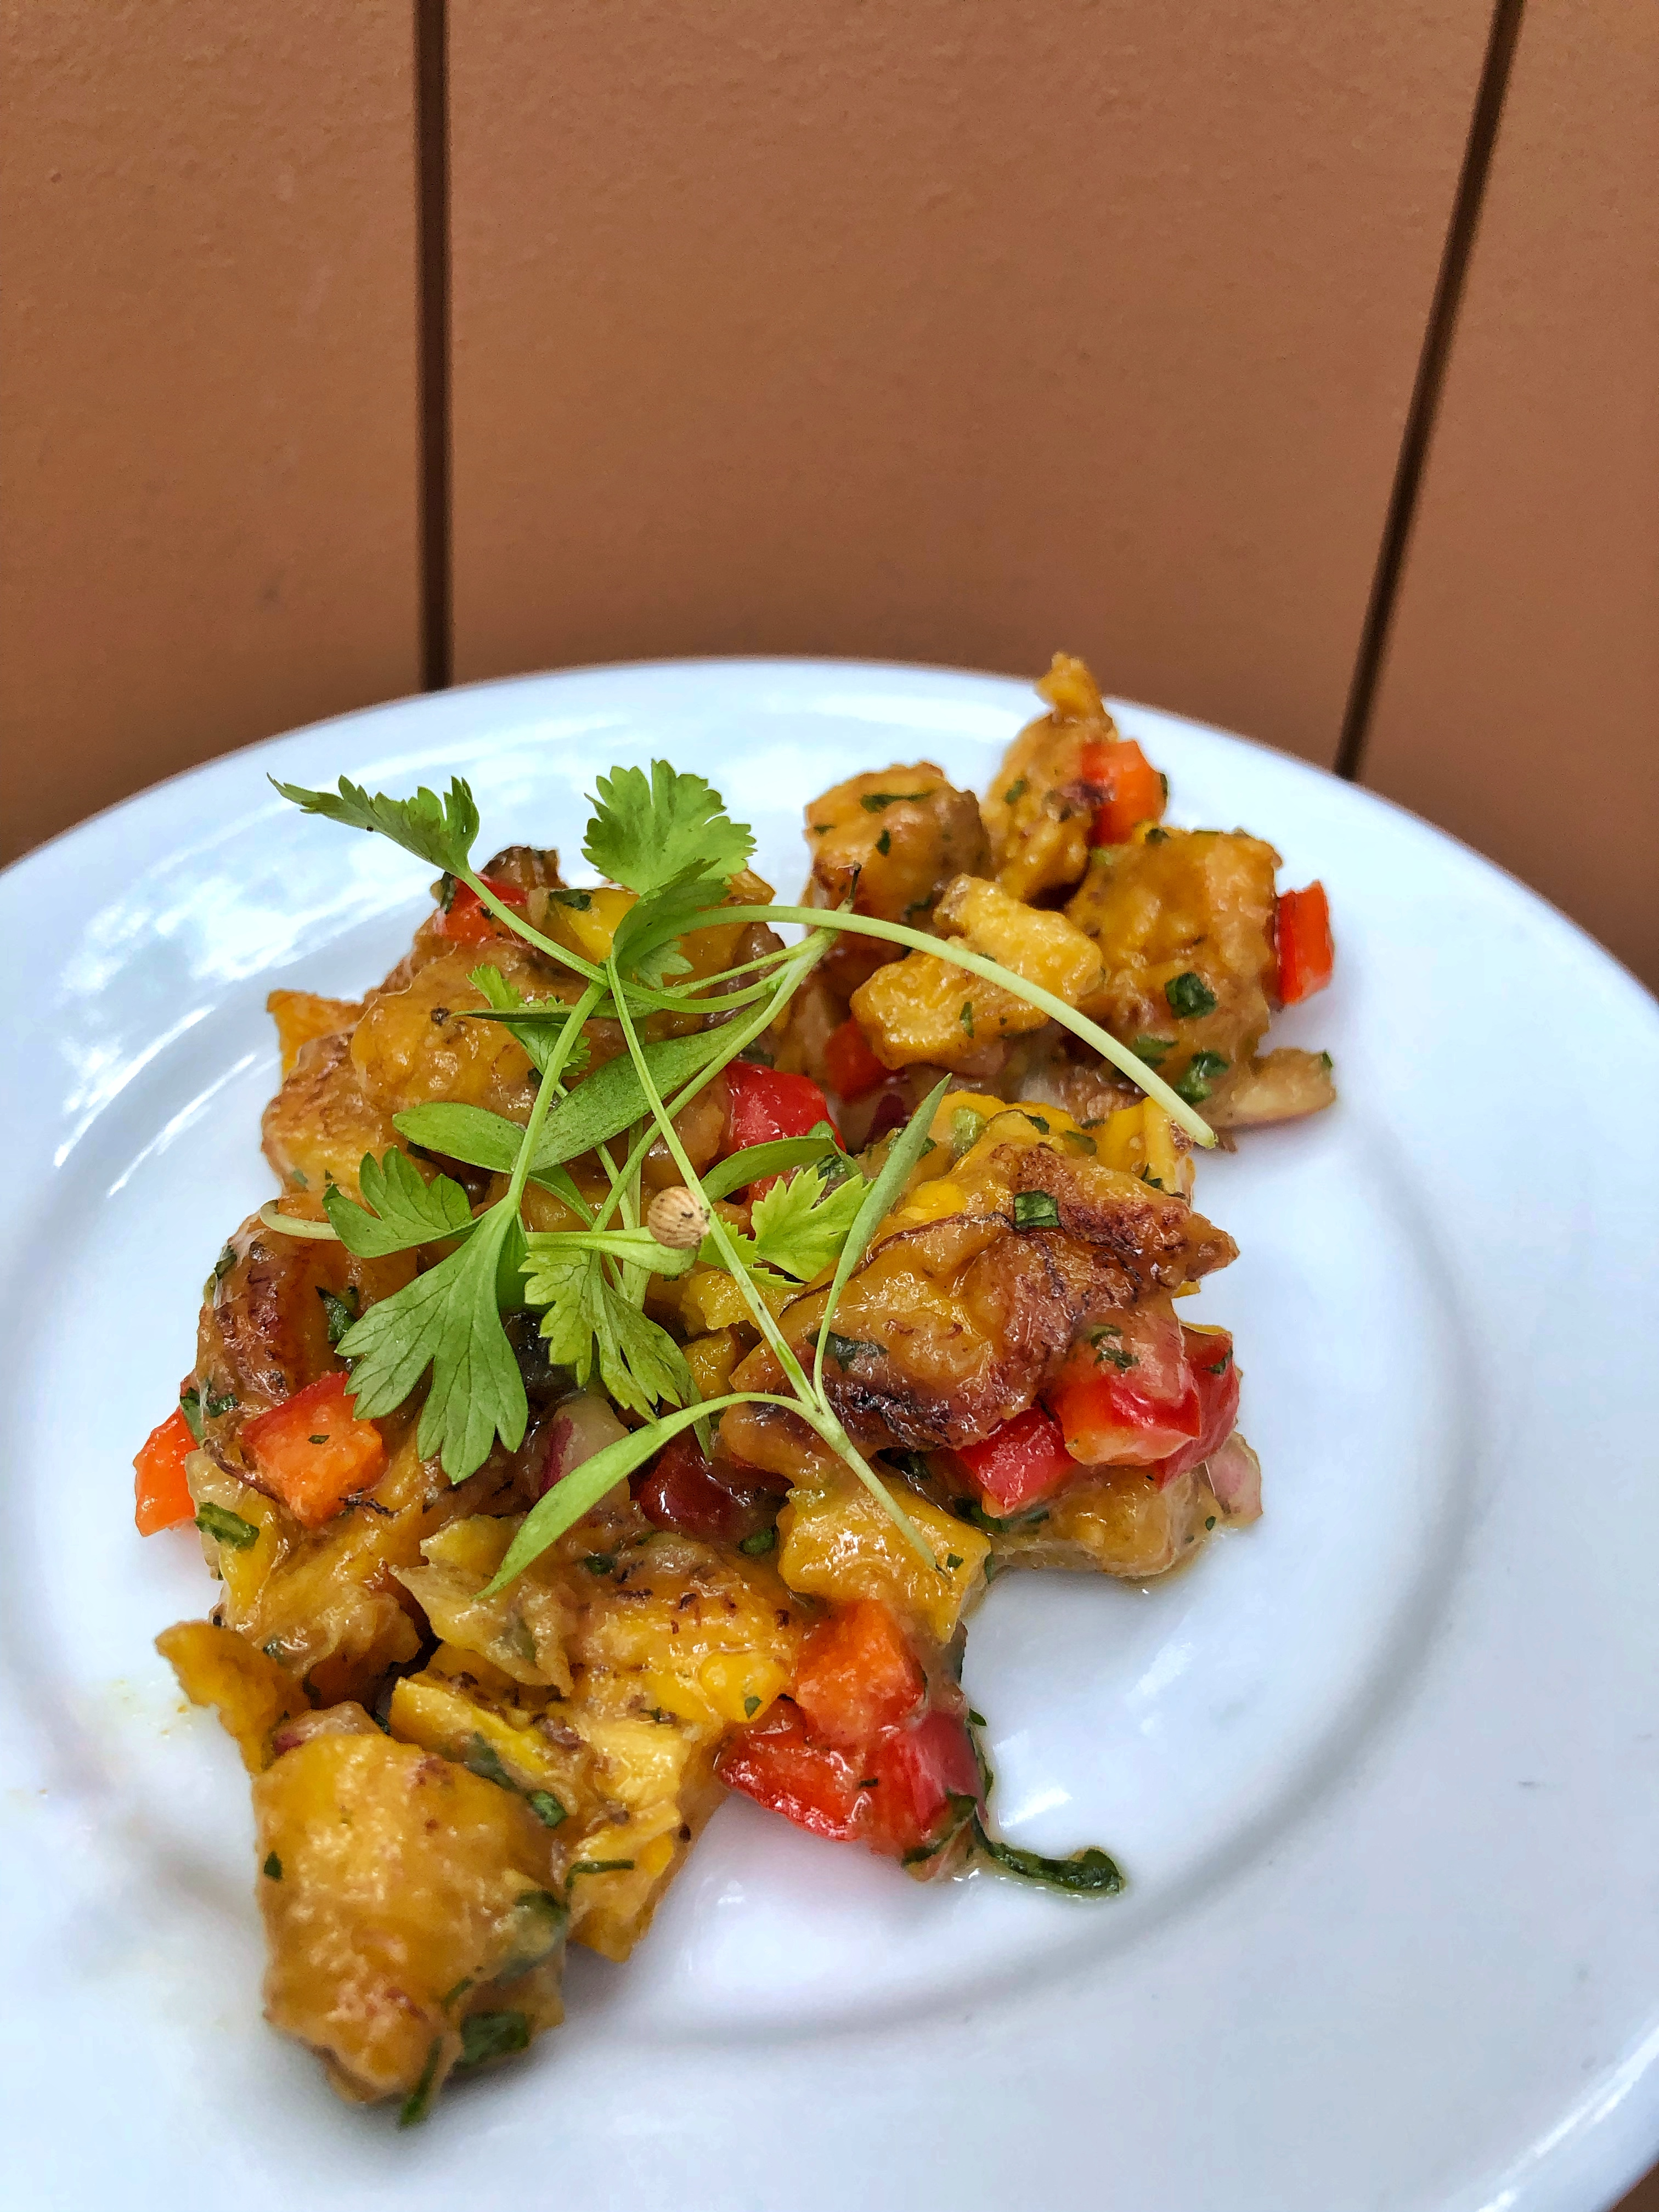 Vegan Options at the Epcot International Food and Wine Festival - Modified Plantain Salad